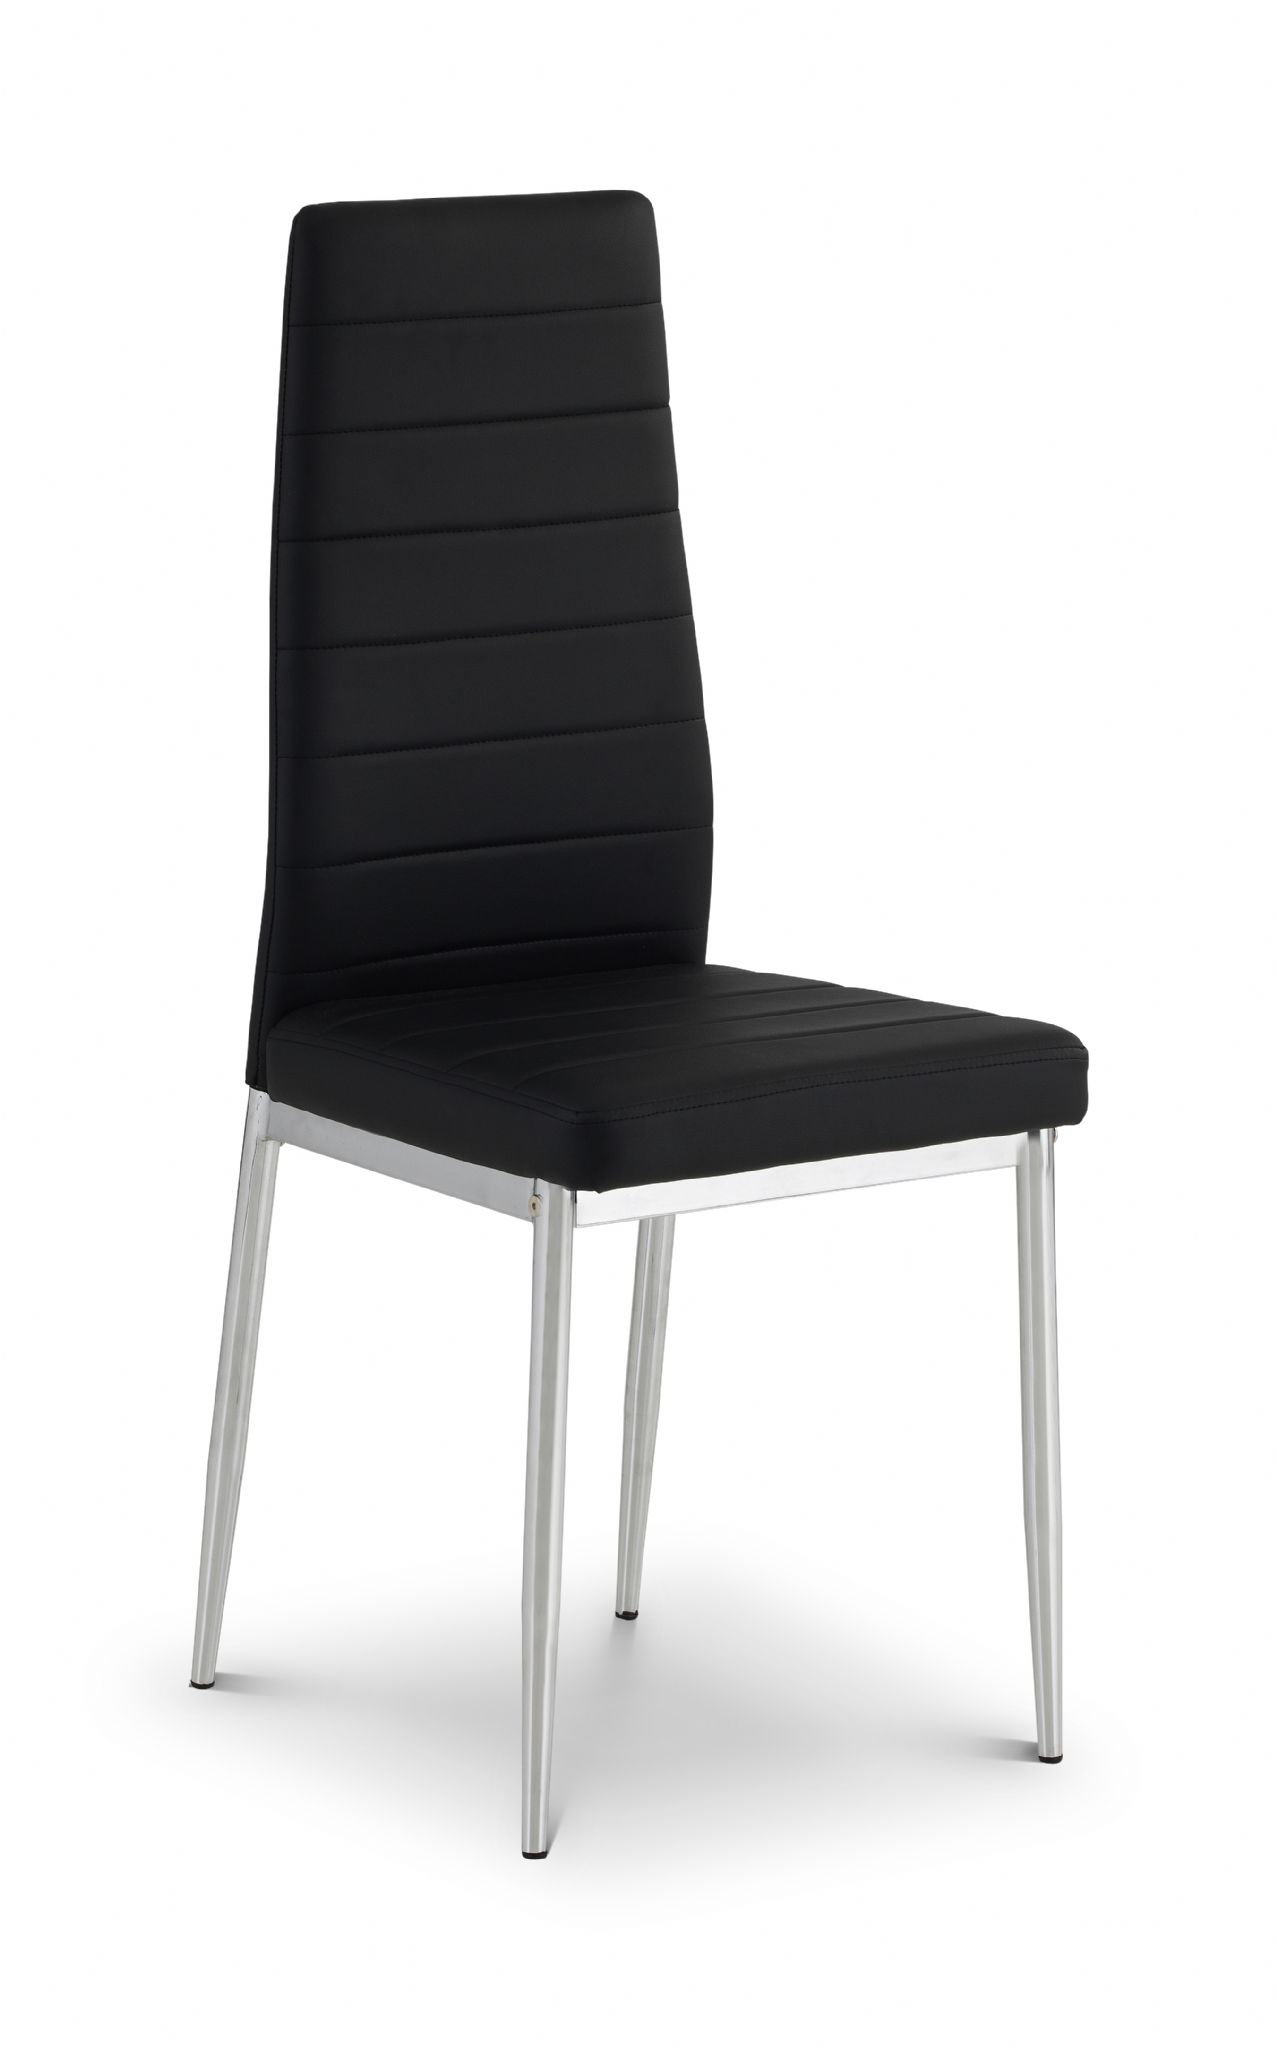 Fine Livorno Chrome And Black Faux Leather Dining Chair Jb220 Pabps2019 Chair Design Images Pabps2019Com